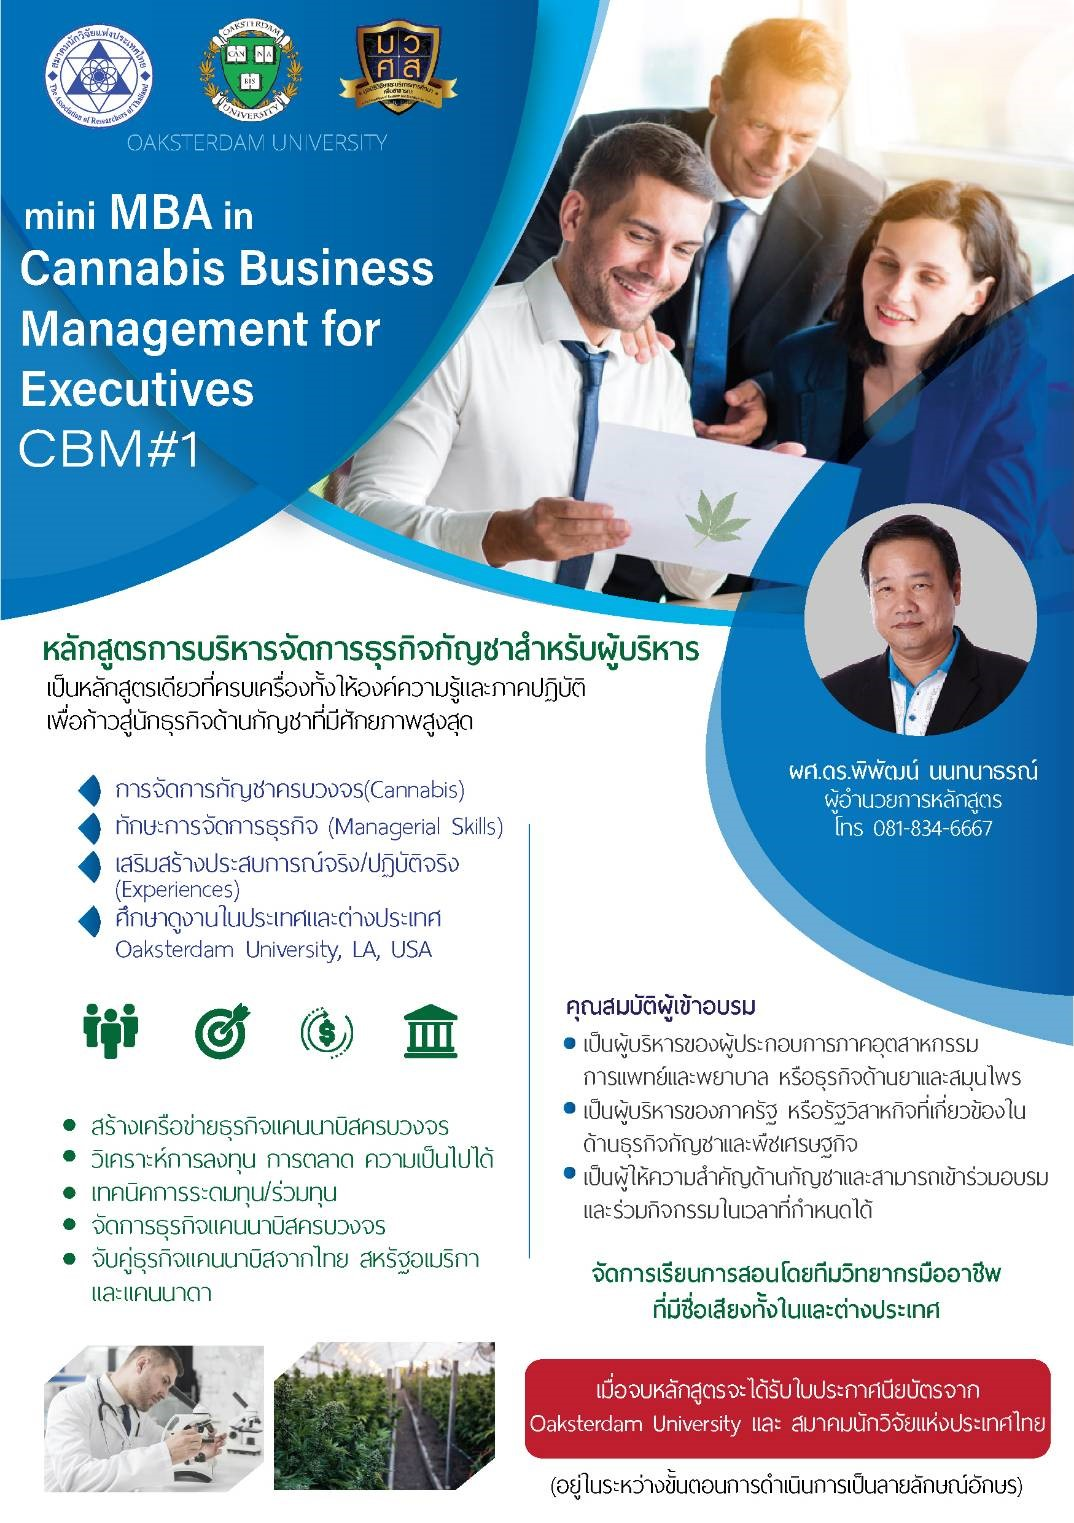 mini MBA in Cannabis Business Management for Executives CBM#1 (รุ่นที่ 1)